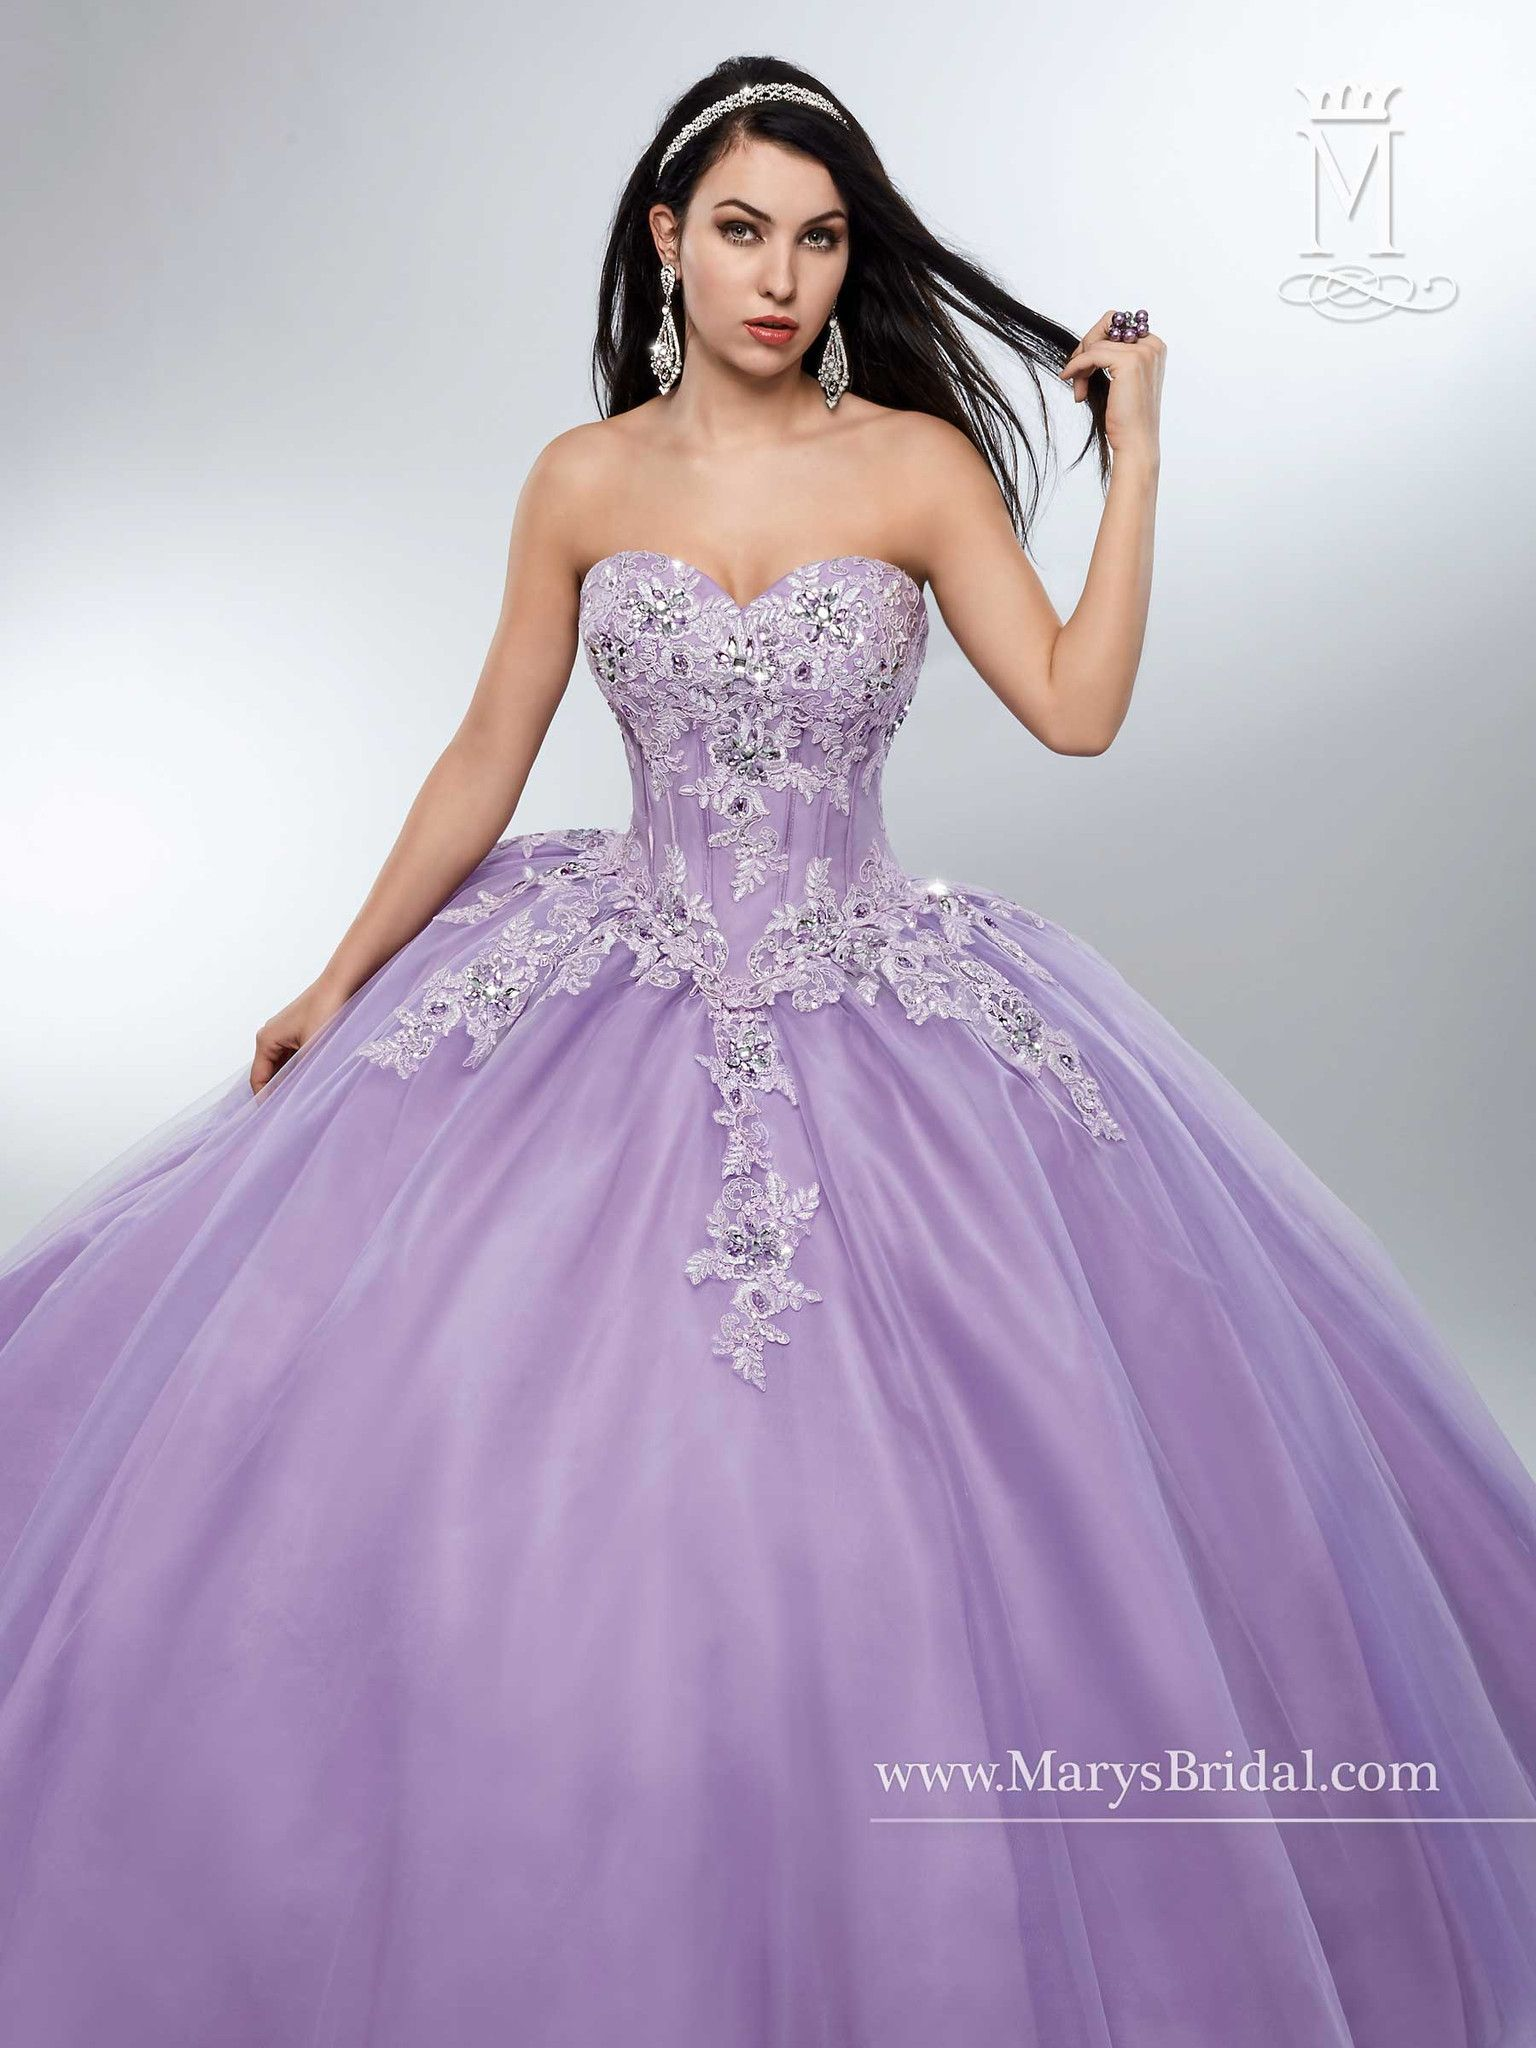 df2f0175d47 Mary s Bridal Beloving Collection Quinceanera Dress Style 4691 ...